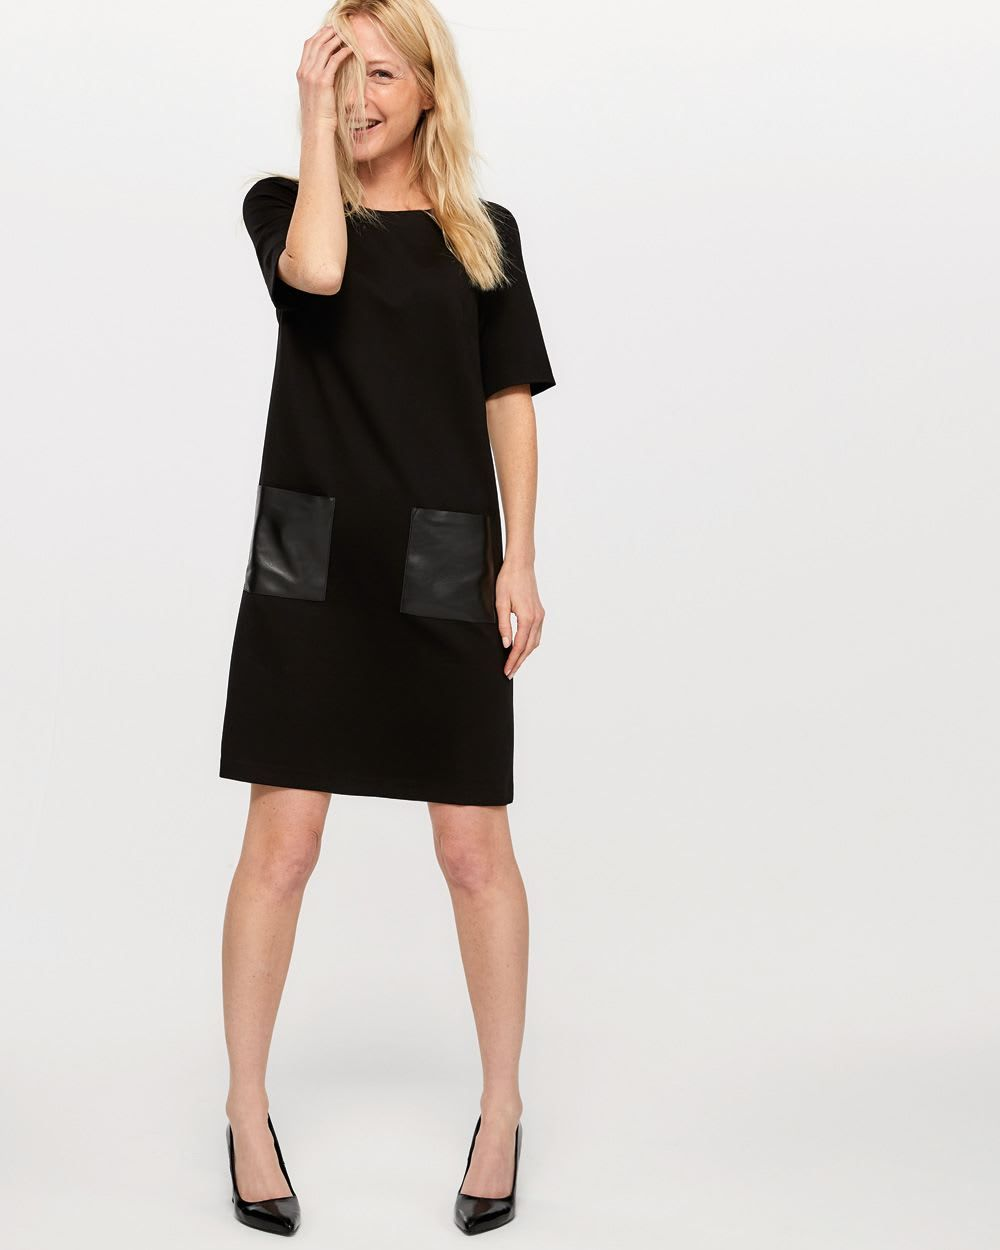 251c9b9dcdafb Shop online for Faux Leather Pocket Swing Dress. Find Dresses, Shop All and  more at Reitmans